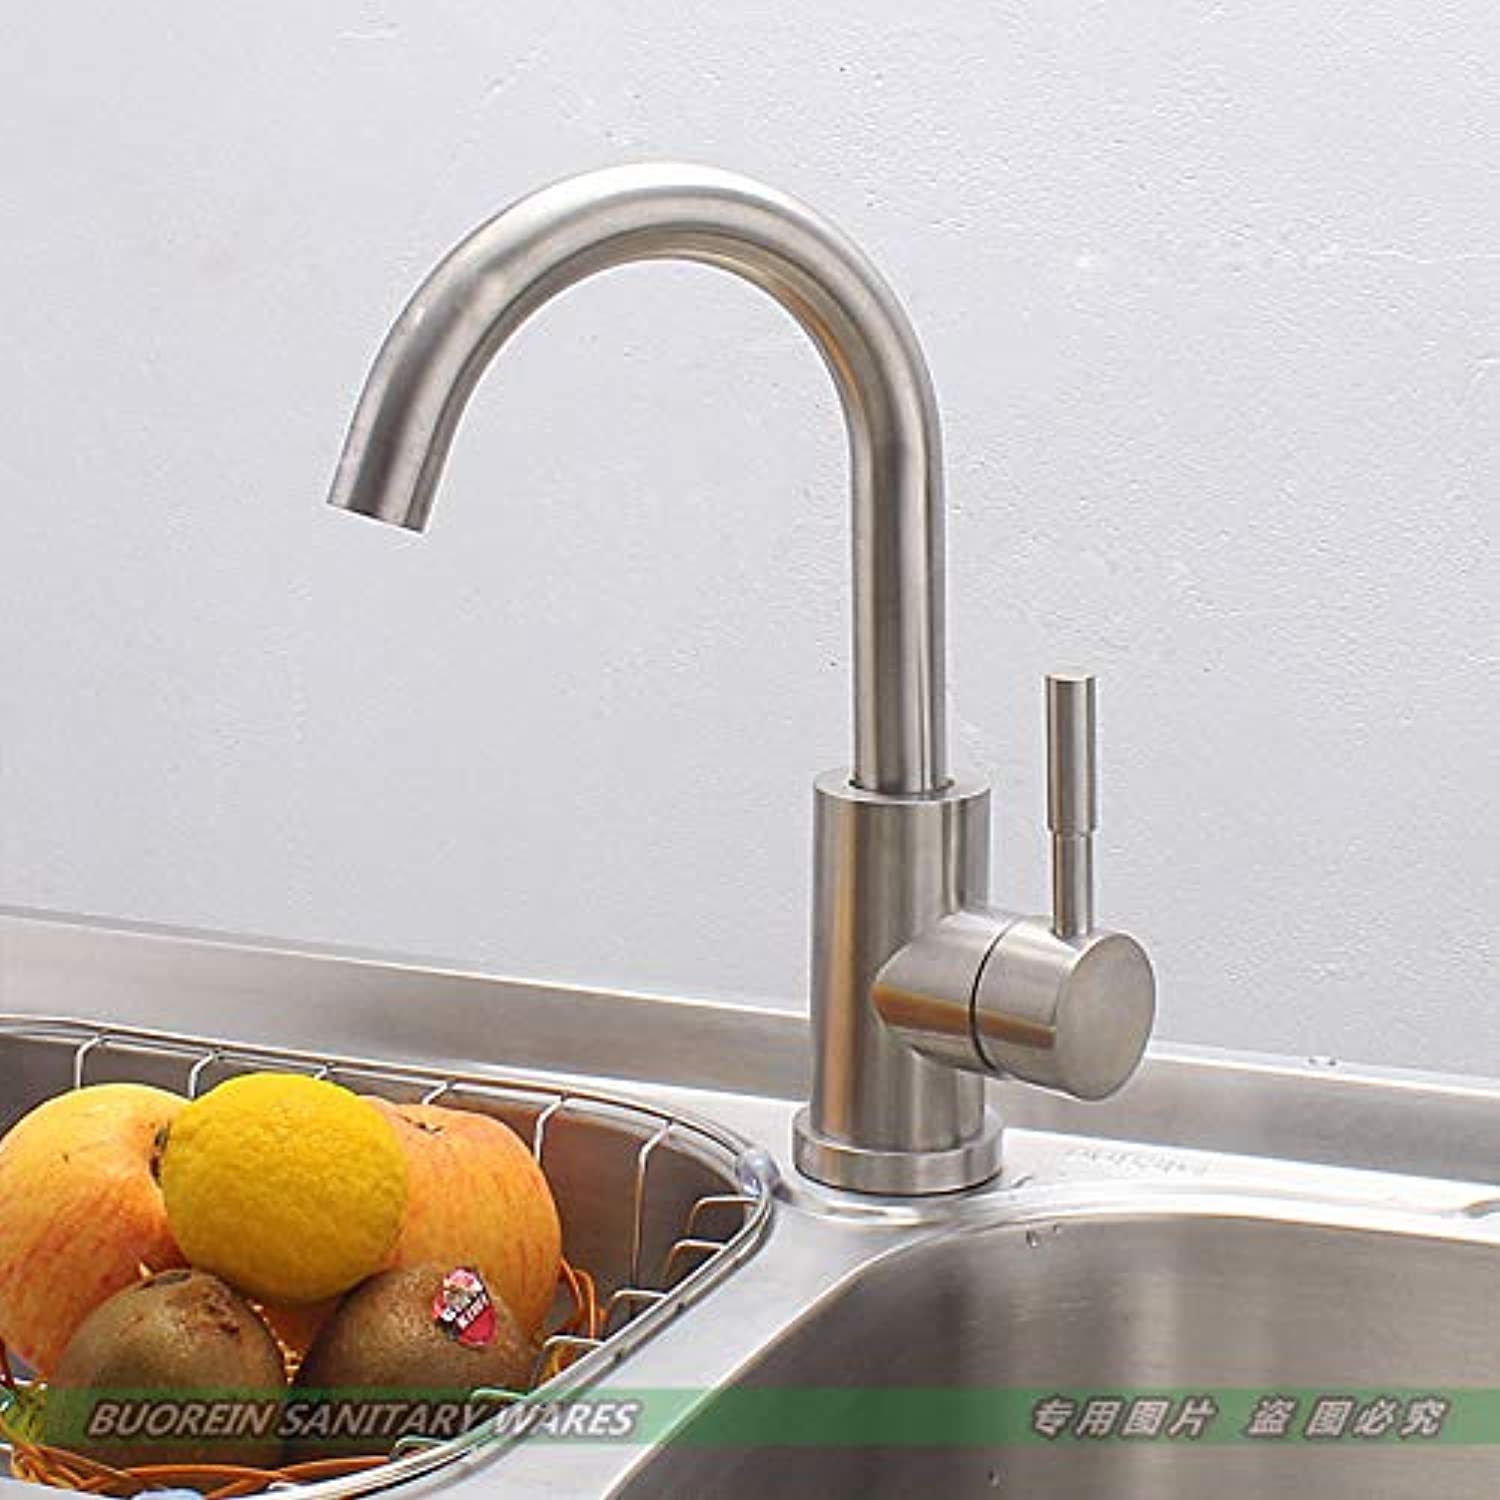 redOOY Taps Stainless Steel Faucet Sink Sink Kitchen Faucet Hot And Cold Water Temperature Mixing Valve